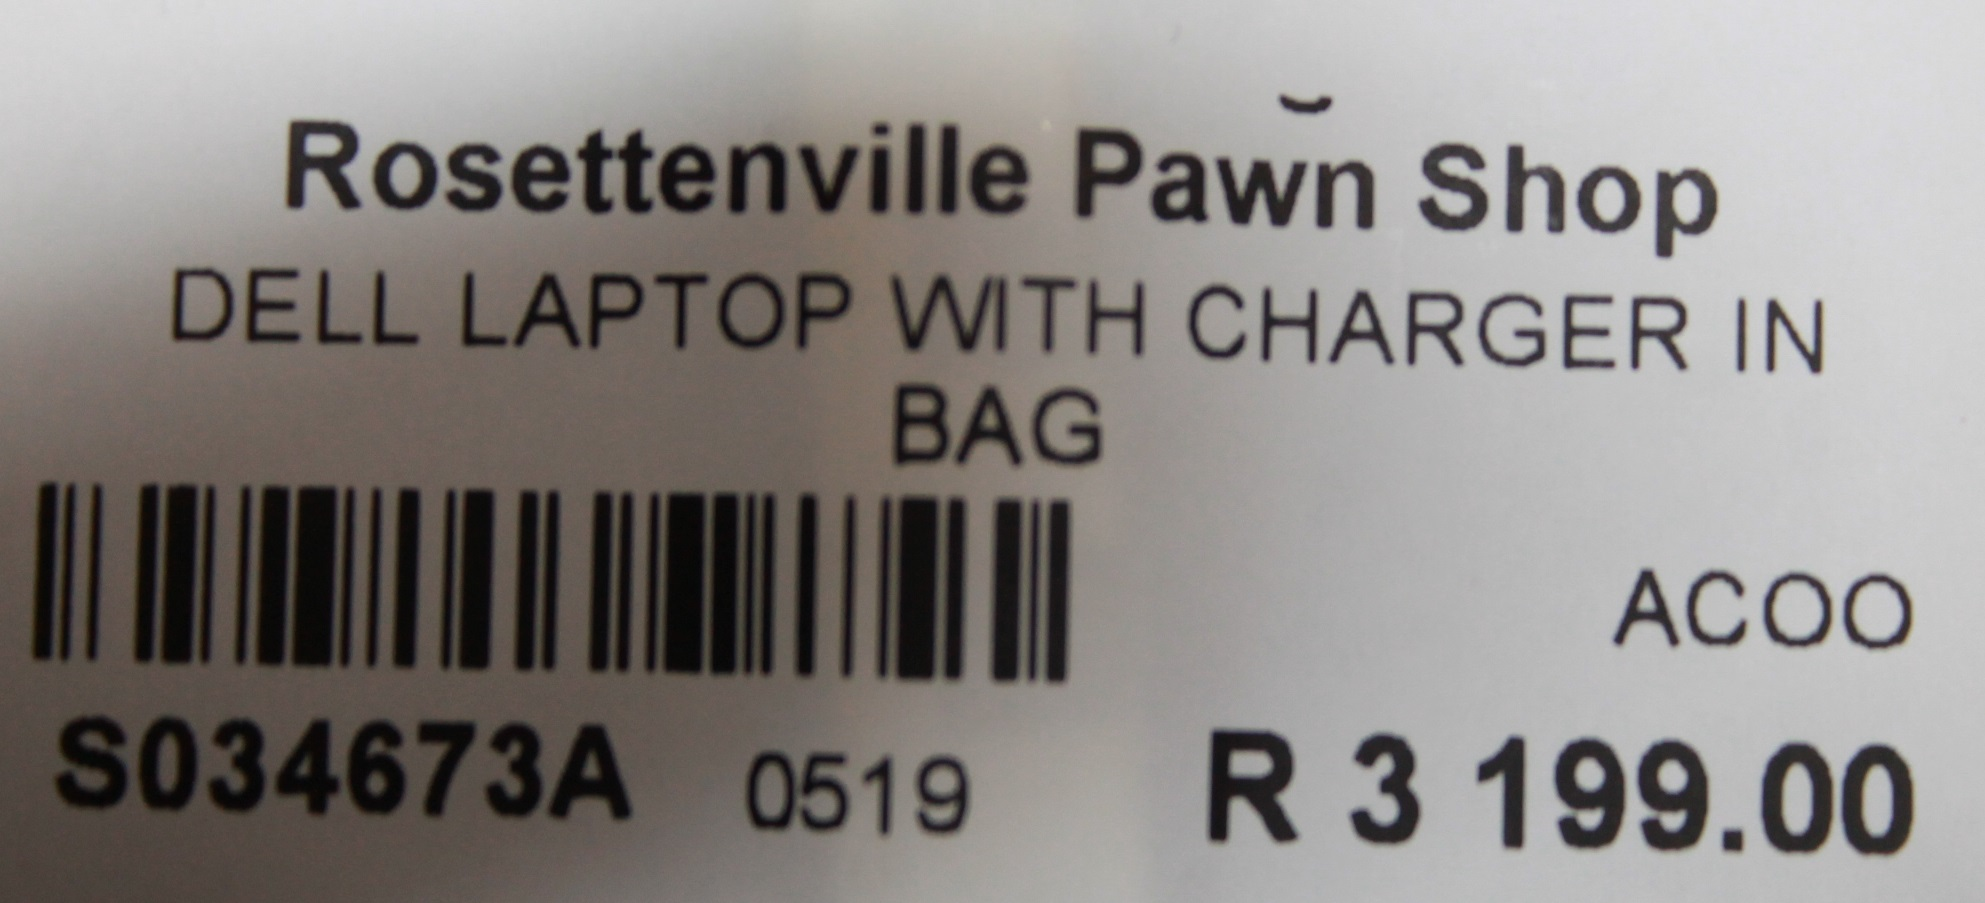 S034673A Dell laptop with charger in bag #Rosettenvillepawnshop